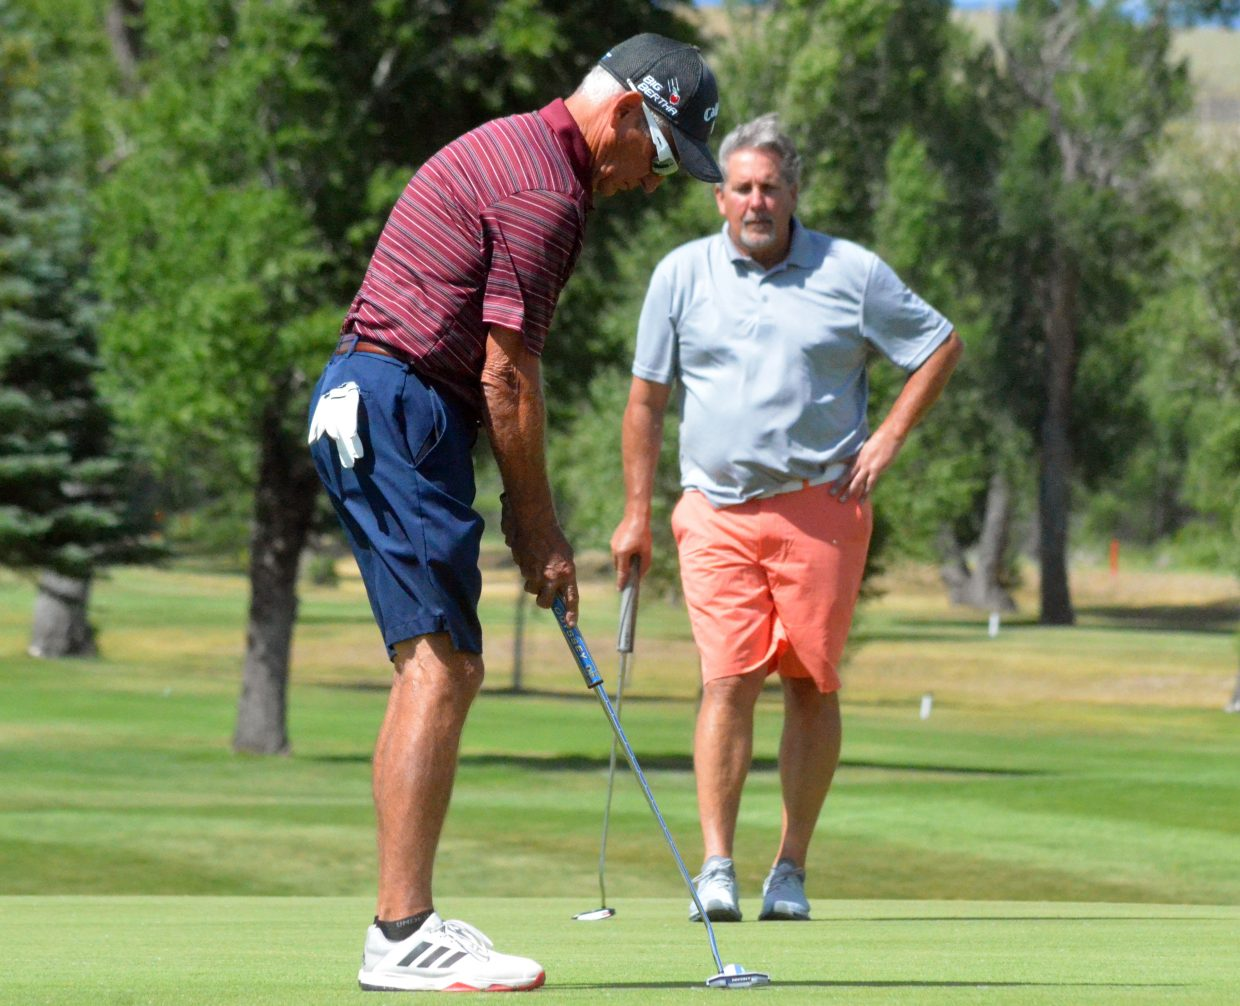 Pete Heuer looks on as Delta's Ron Alberts putts for birdie on the 18th green to finish out his first day of the 51st annual Cottonwood Classic at Yampa Valley Golf Course.